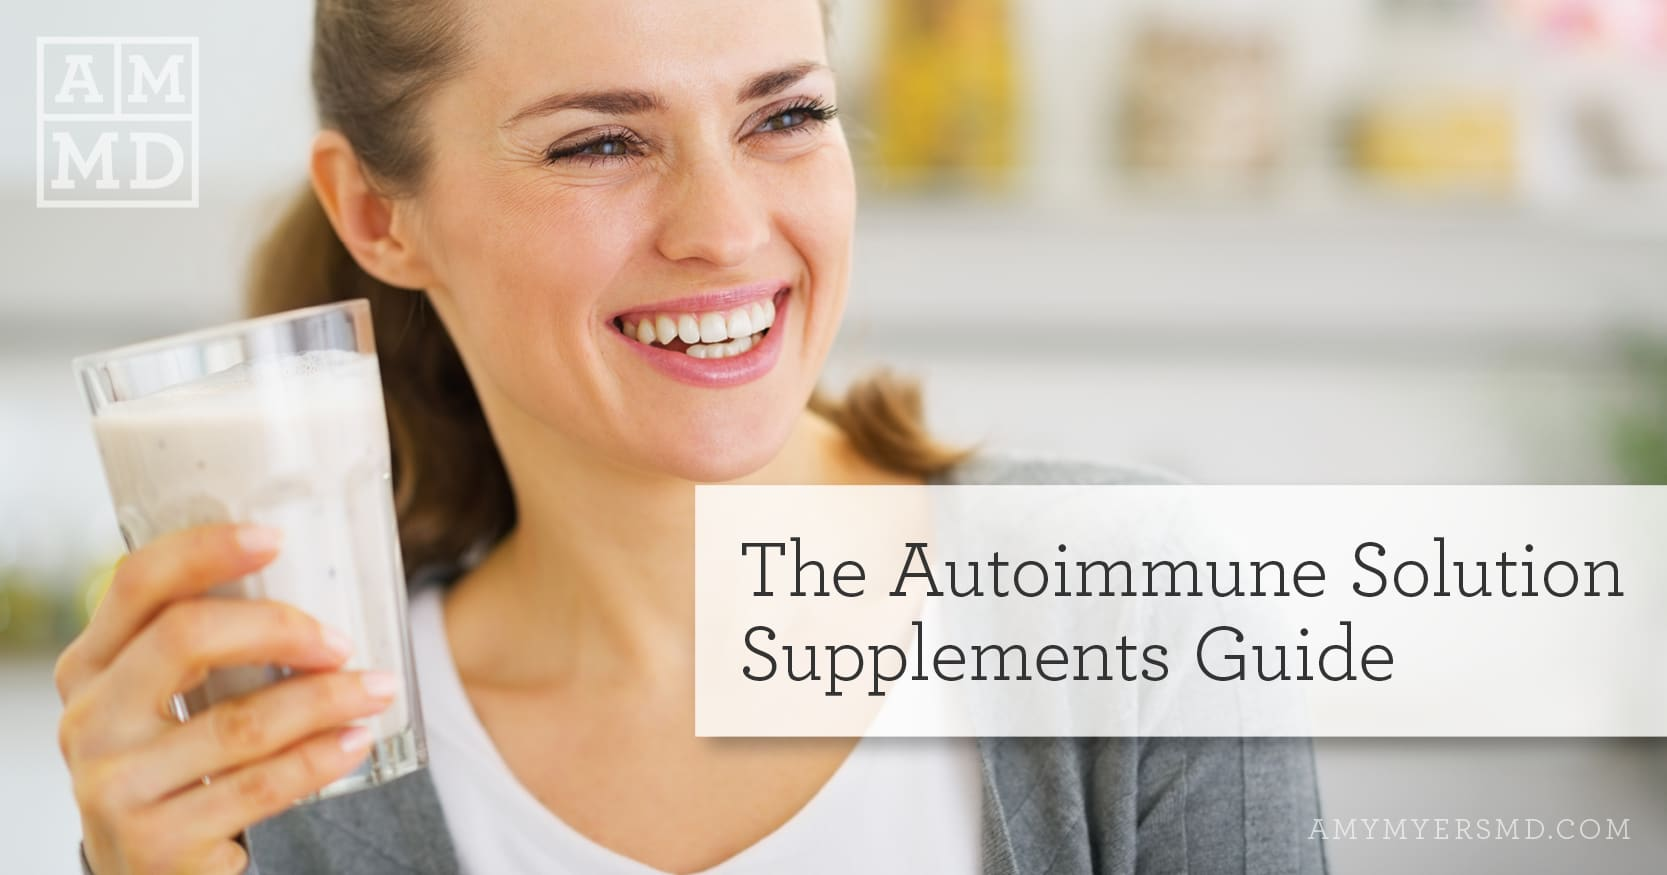 The Autoimmune Solution Supplements Guide - A Woman Smiling while holding a drink - Featured Image - Amy Myers MD